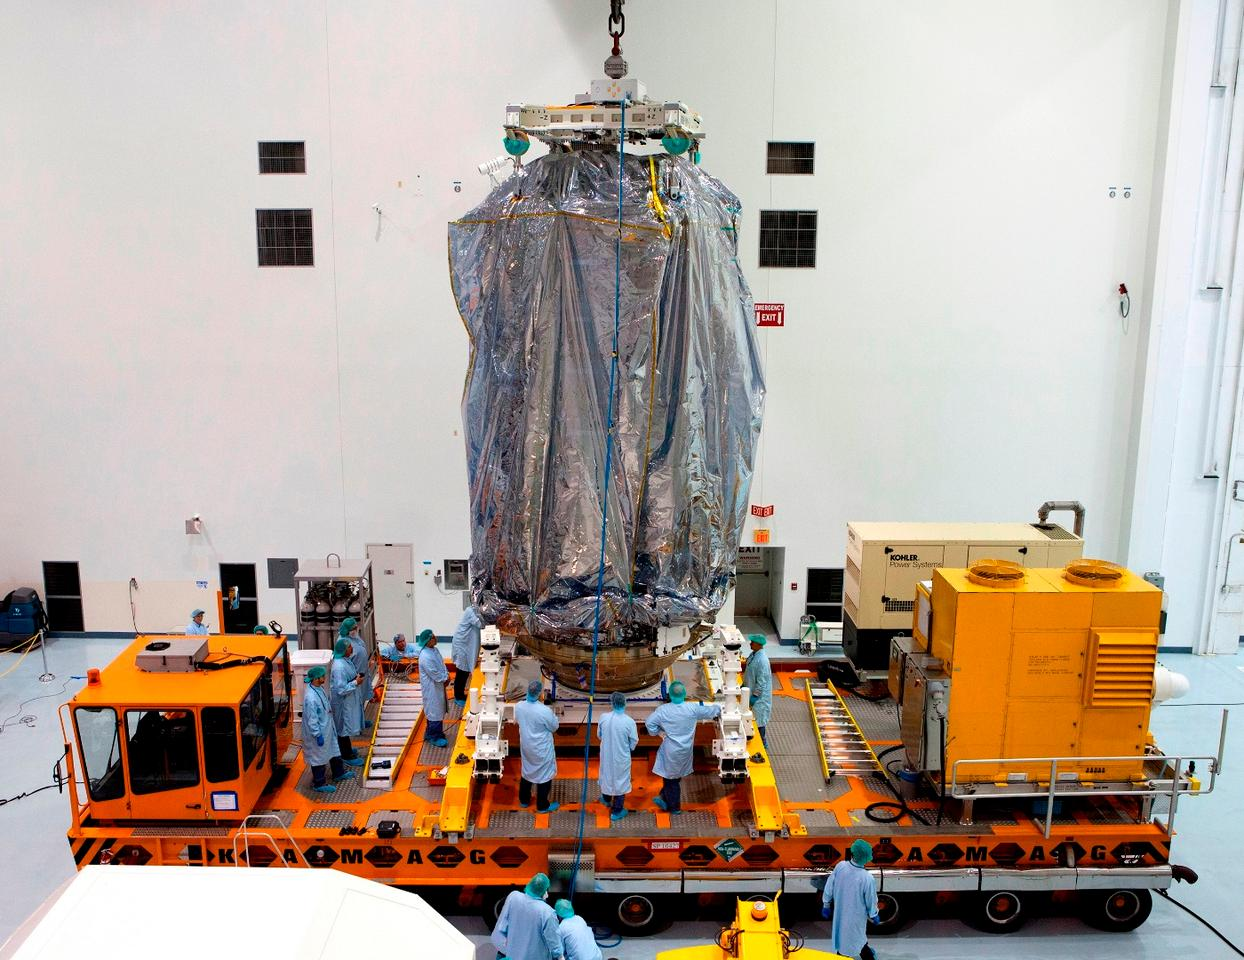 Cygnus spacecraft prepared to move